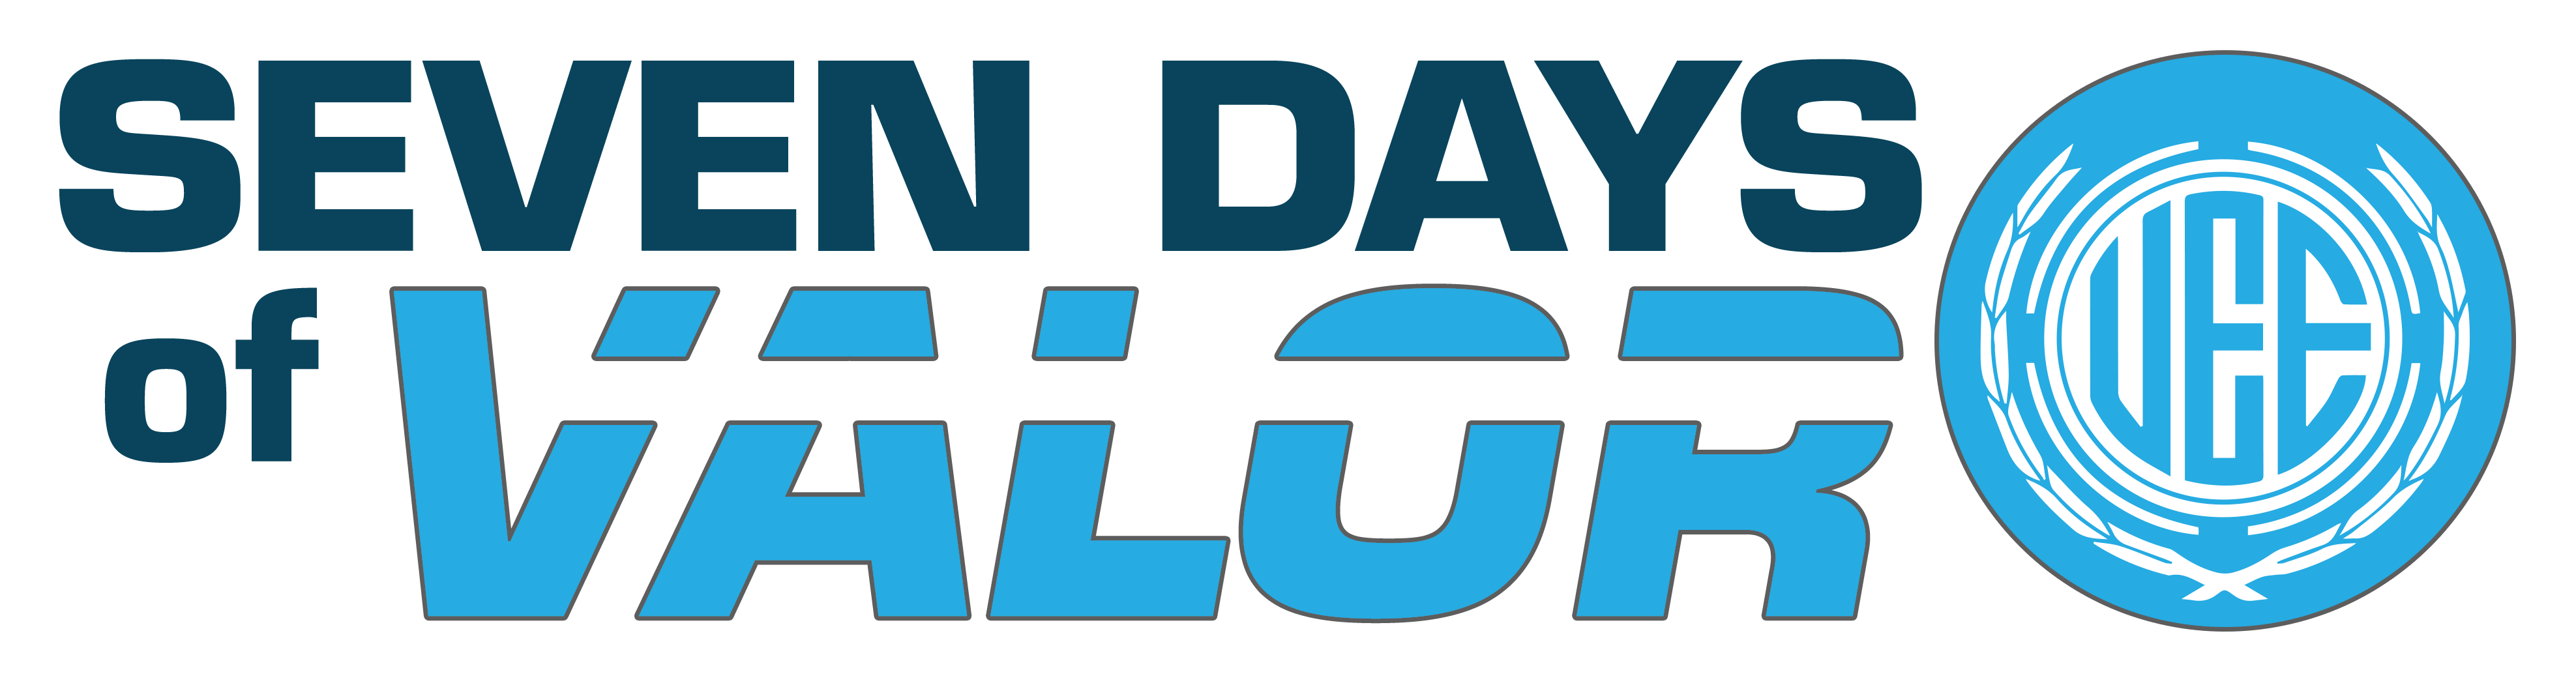 Seven Days of Valor logo